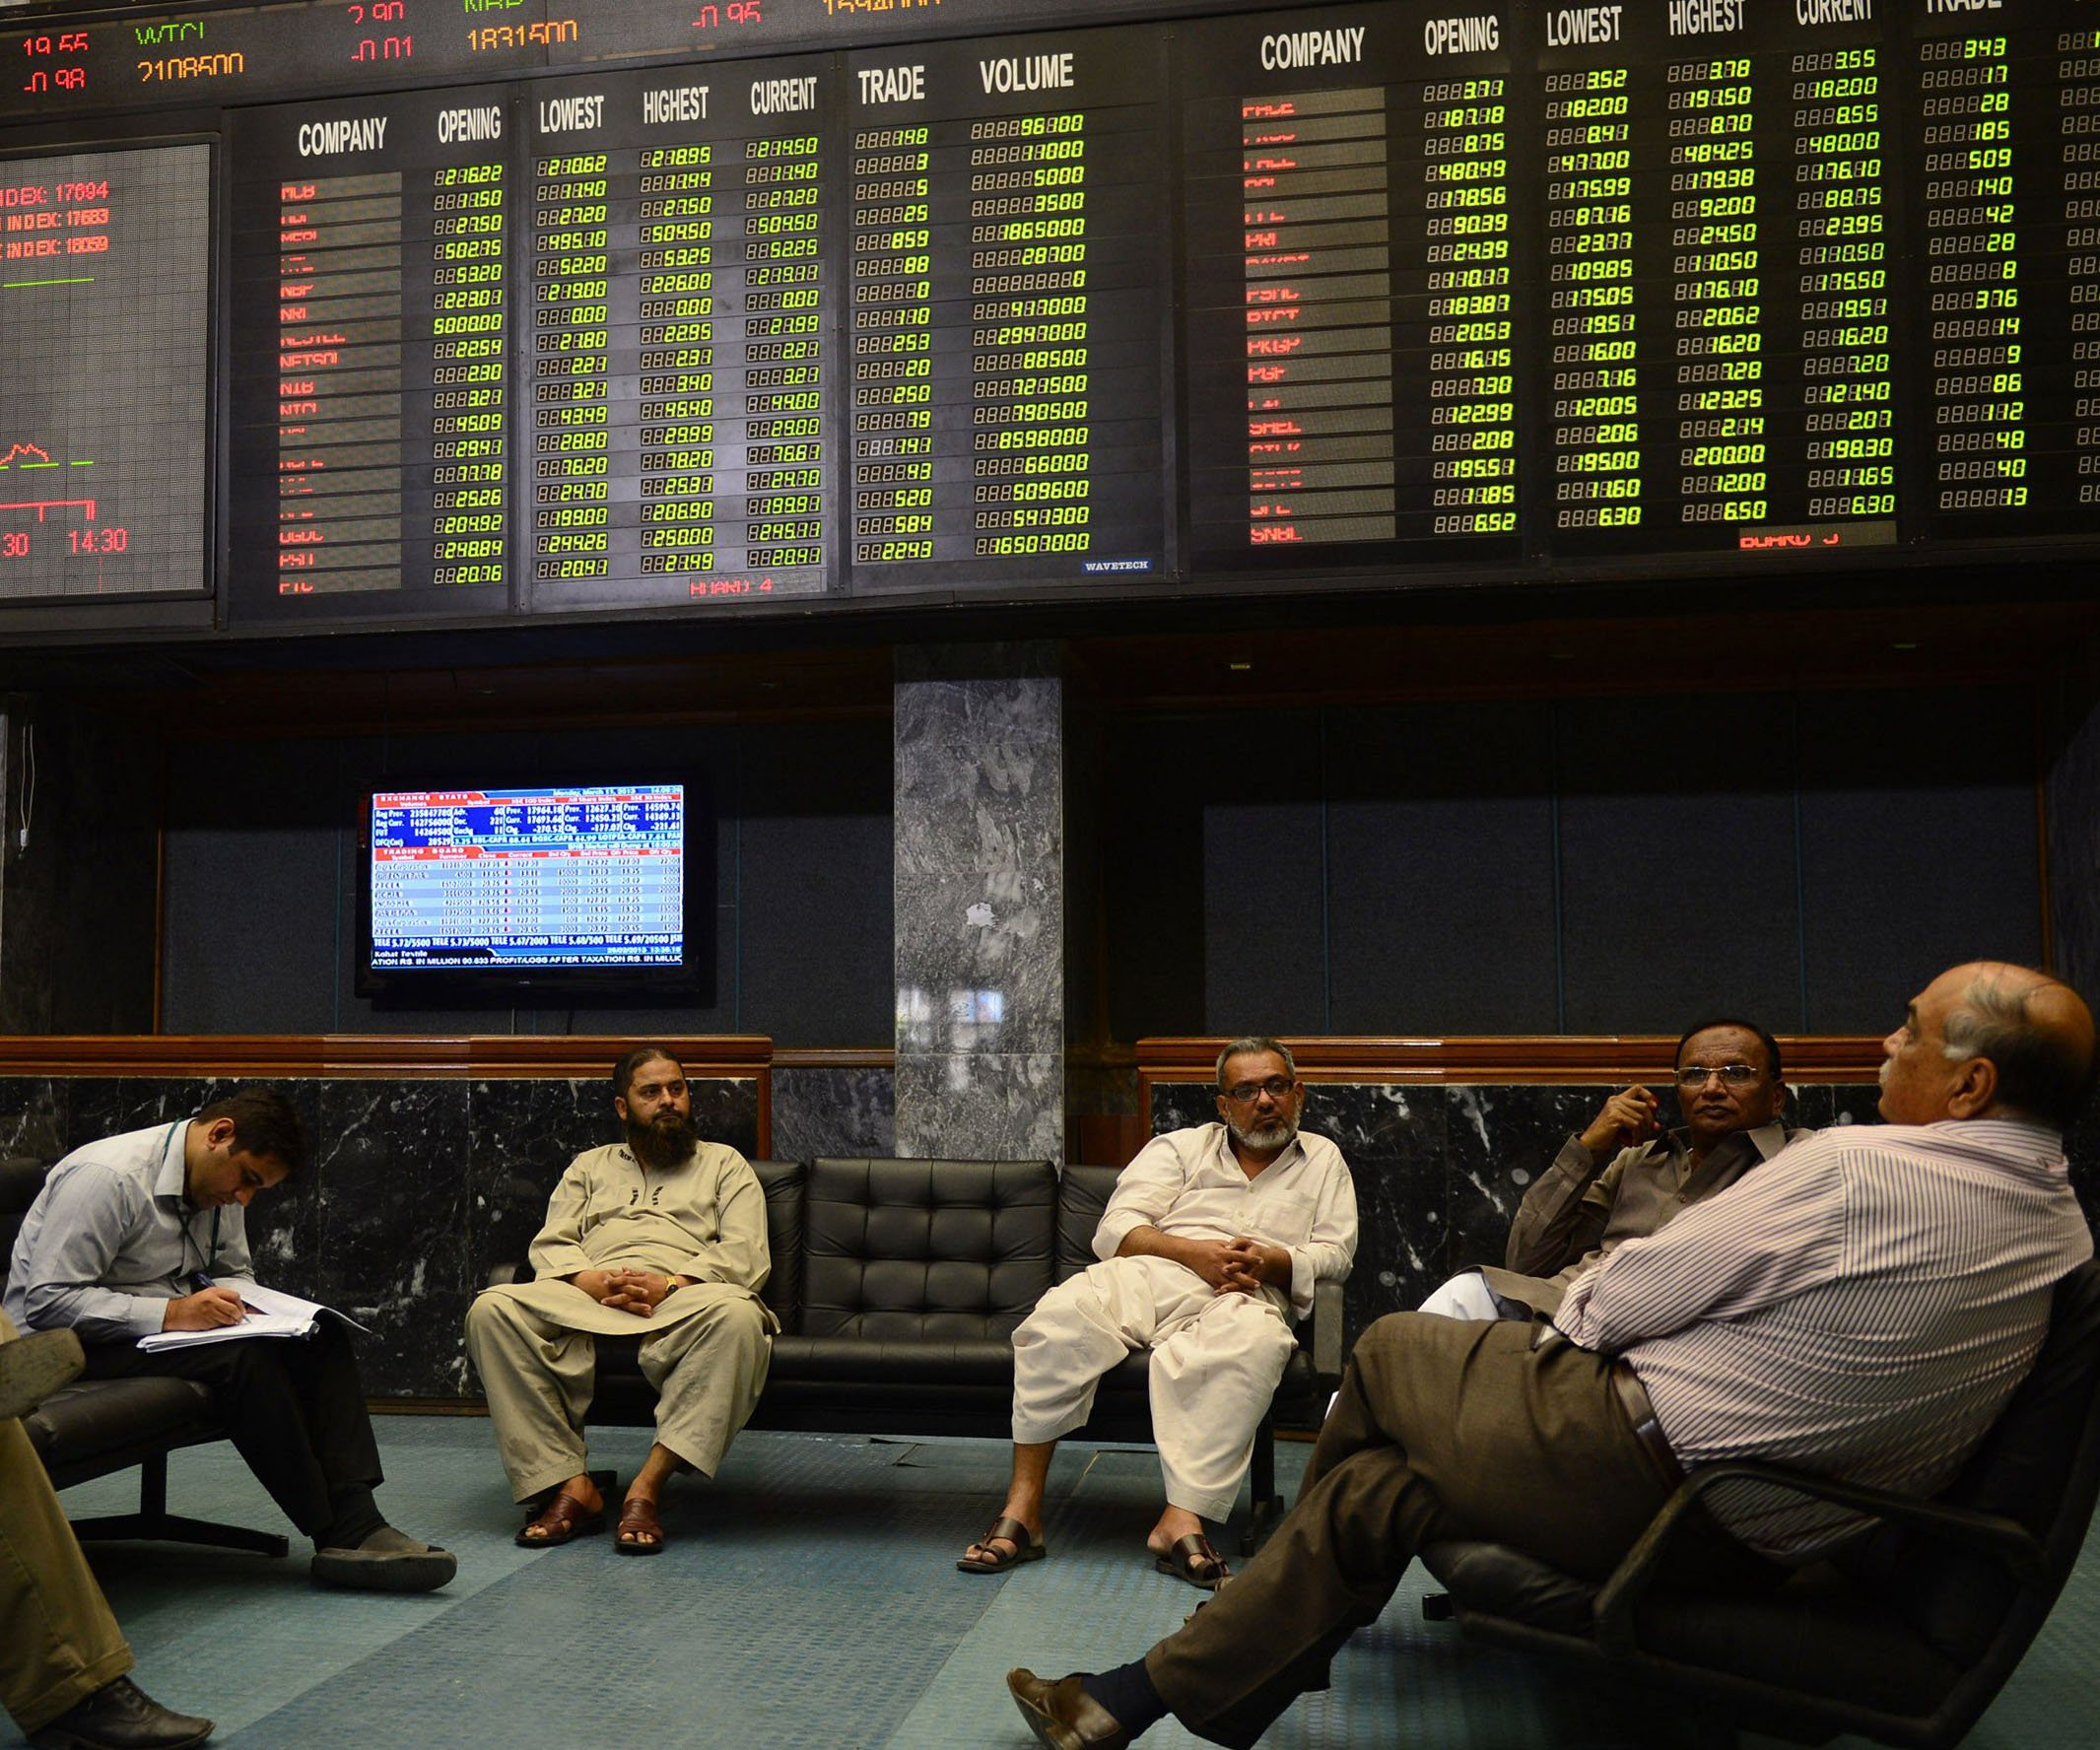 stock-market-kse-100-index-photo-afp-2-2-2-3-2-2-5-2-2-2-3-2-2-2-2